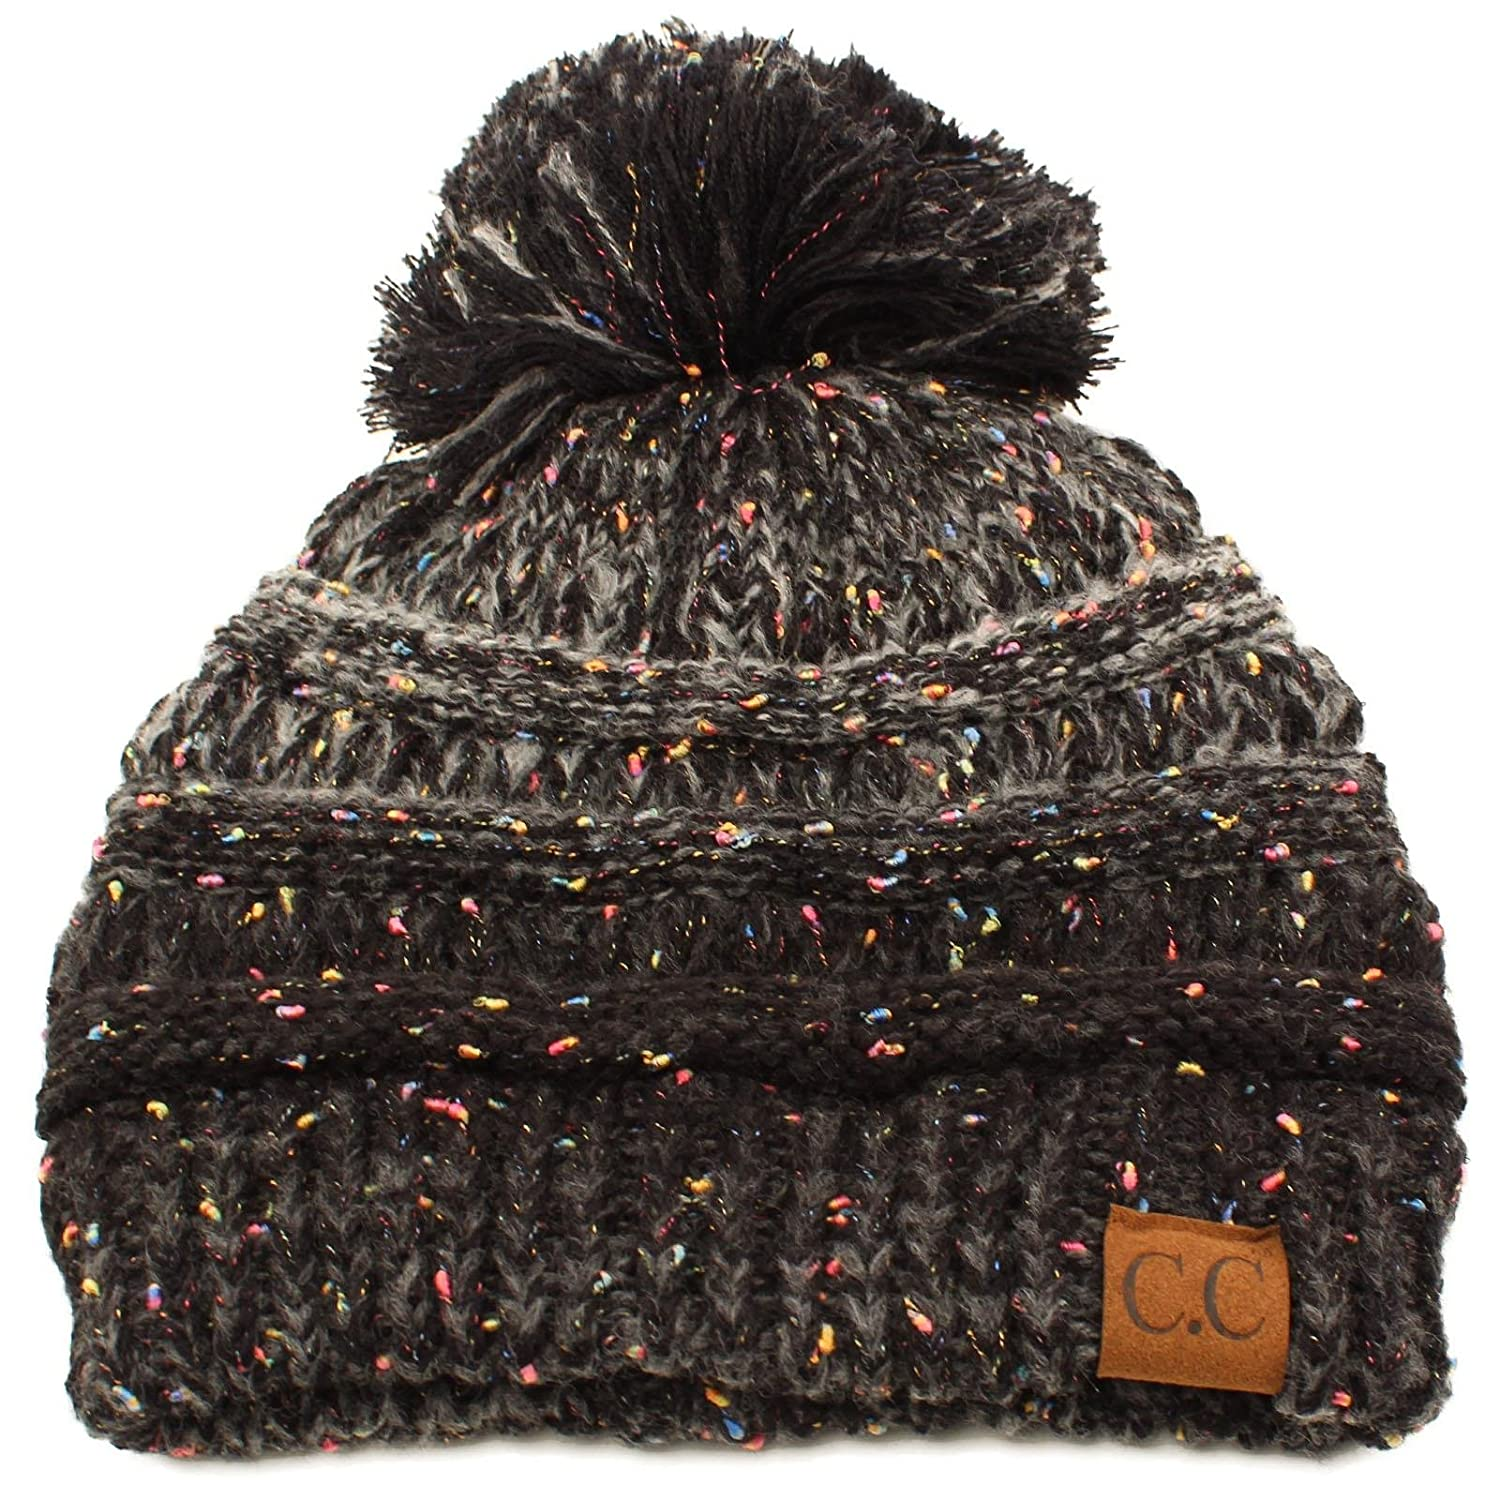 44ce5846e4e Confetti Ombre Big Pom Pom Warm Chunky Soft Stretch Knit Beanie Hat Black  at Amazon Women s Clothing store